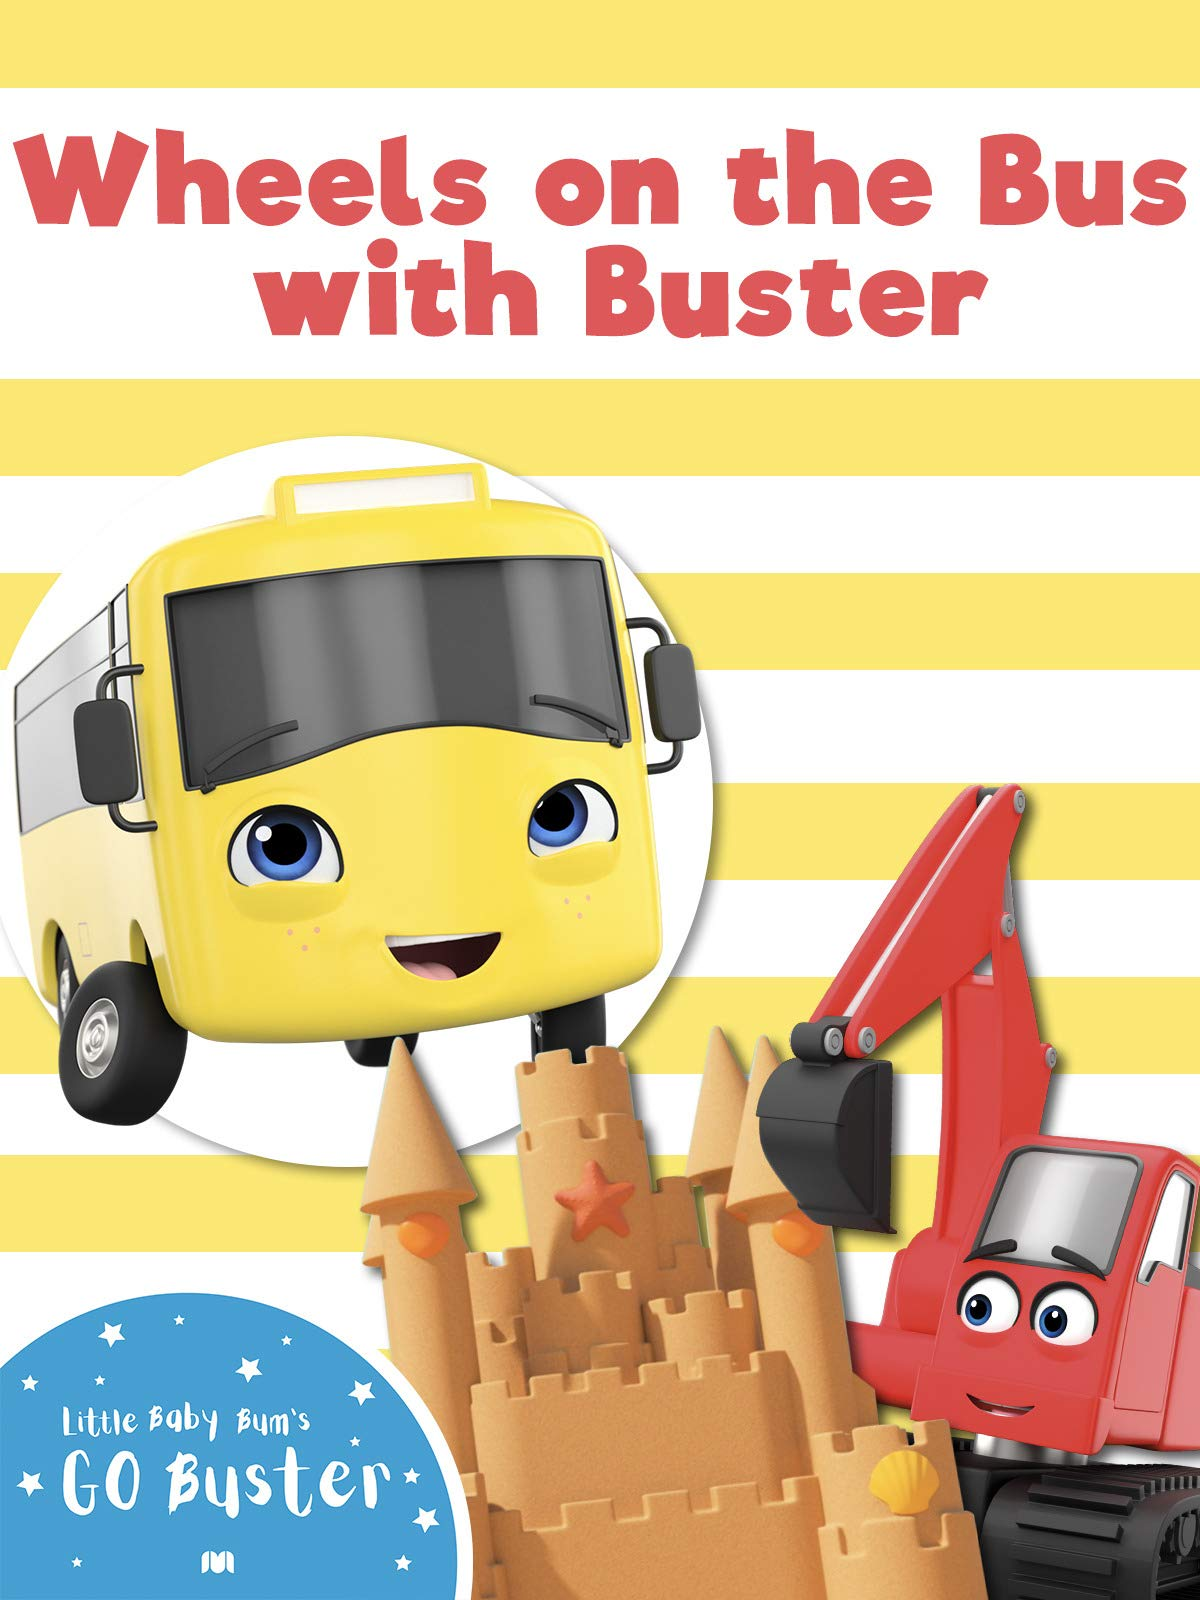 Wheels on the Bus with Buster - Go Buster